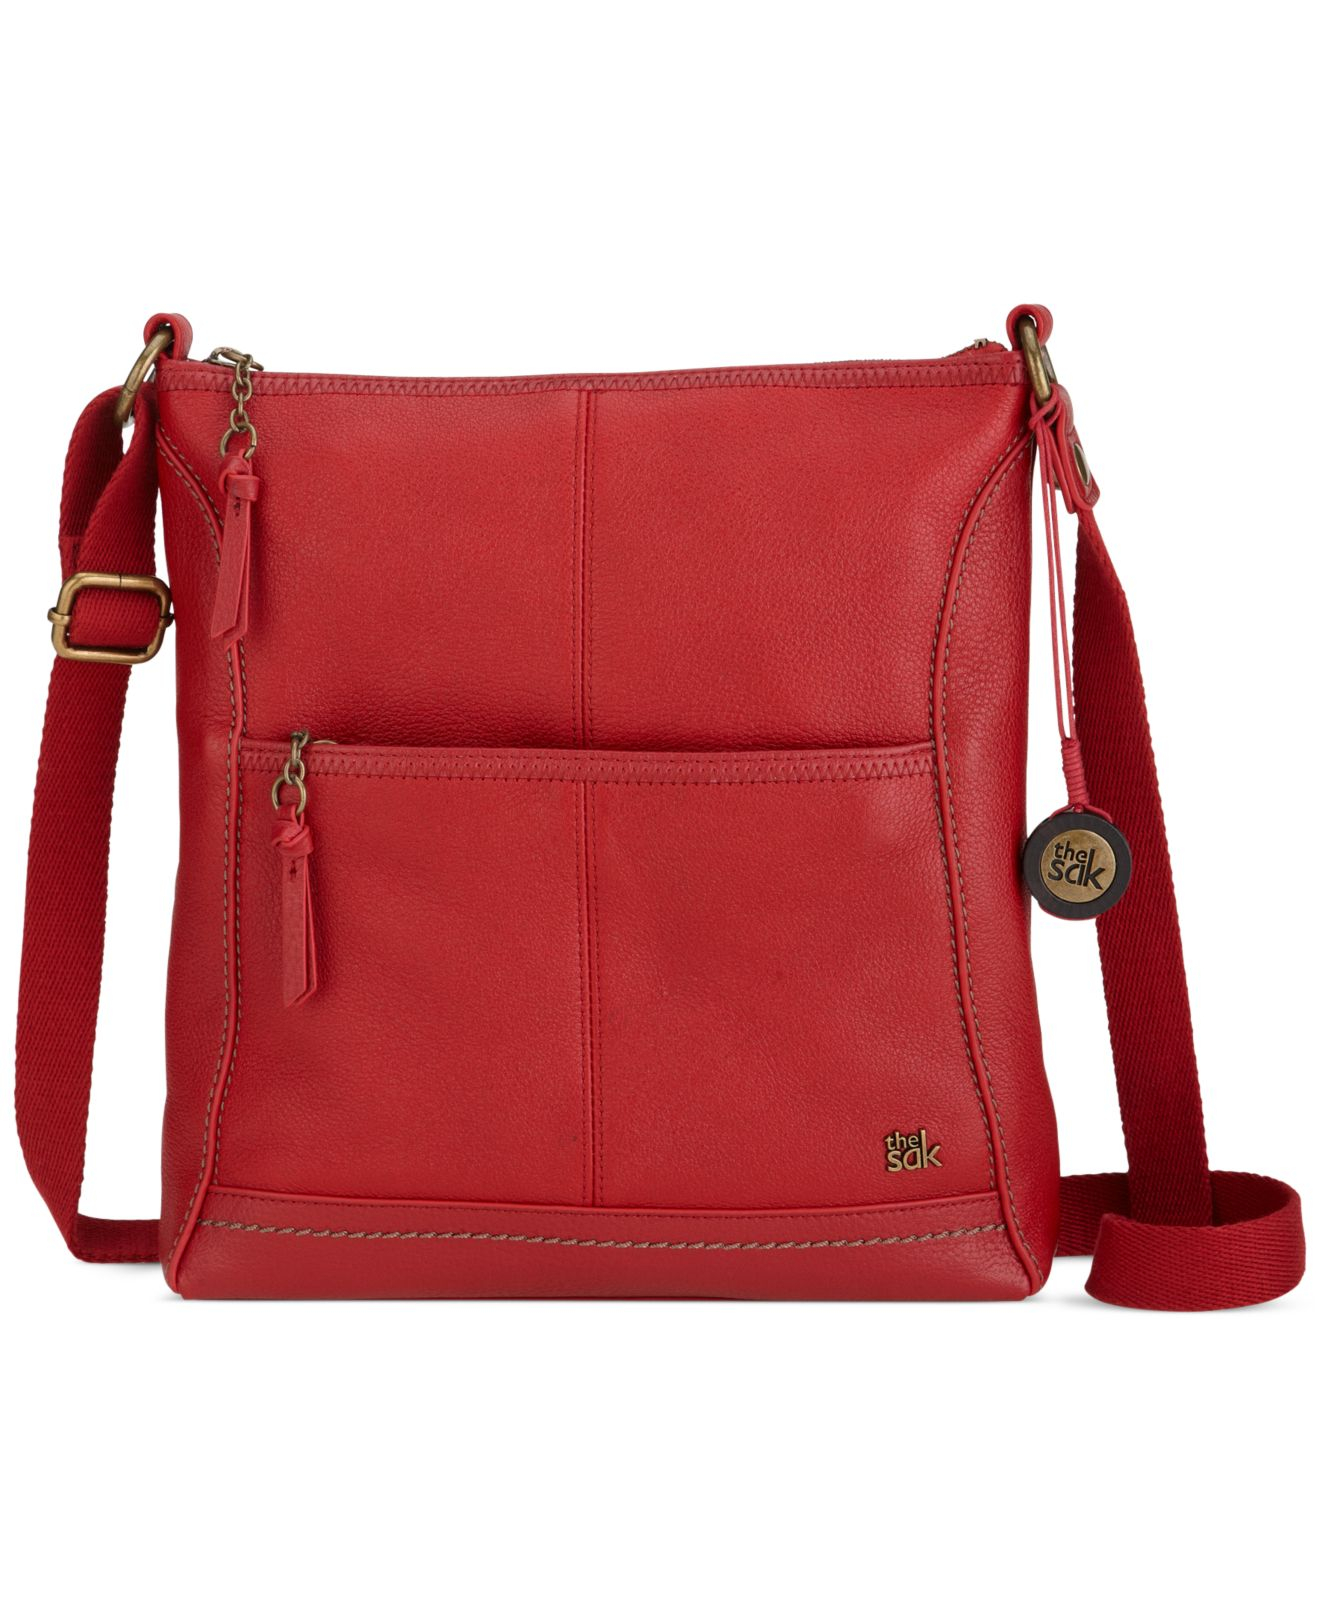 Lyst The Sak Iris Leather Crossbody Bag In Red. The Sak Purse Leather Best  Image Ccdbb b83dc67017d83